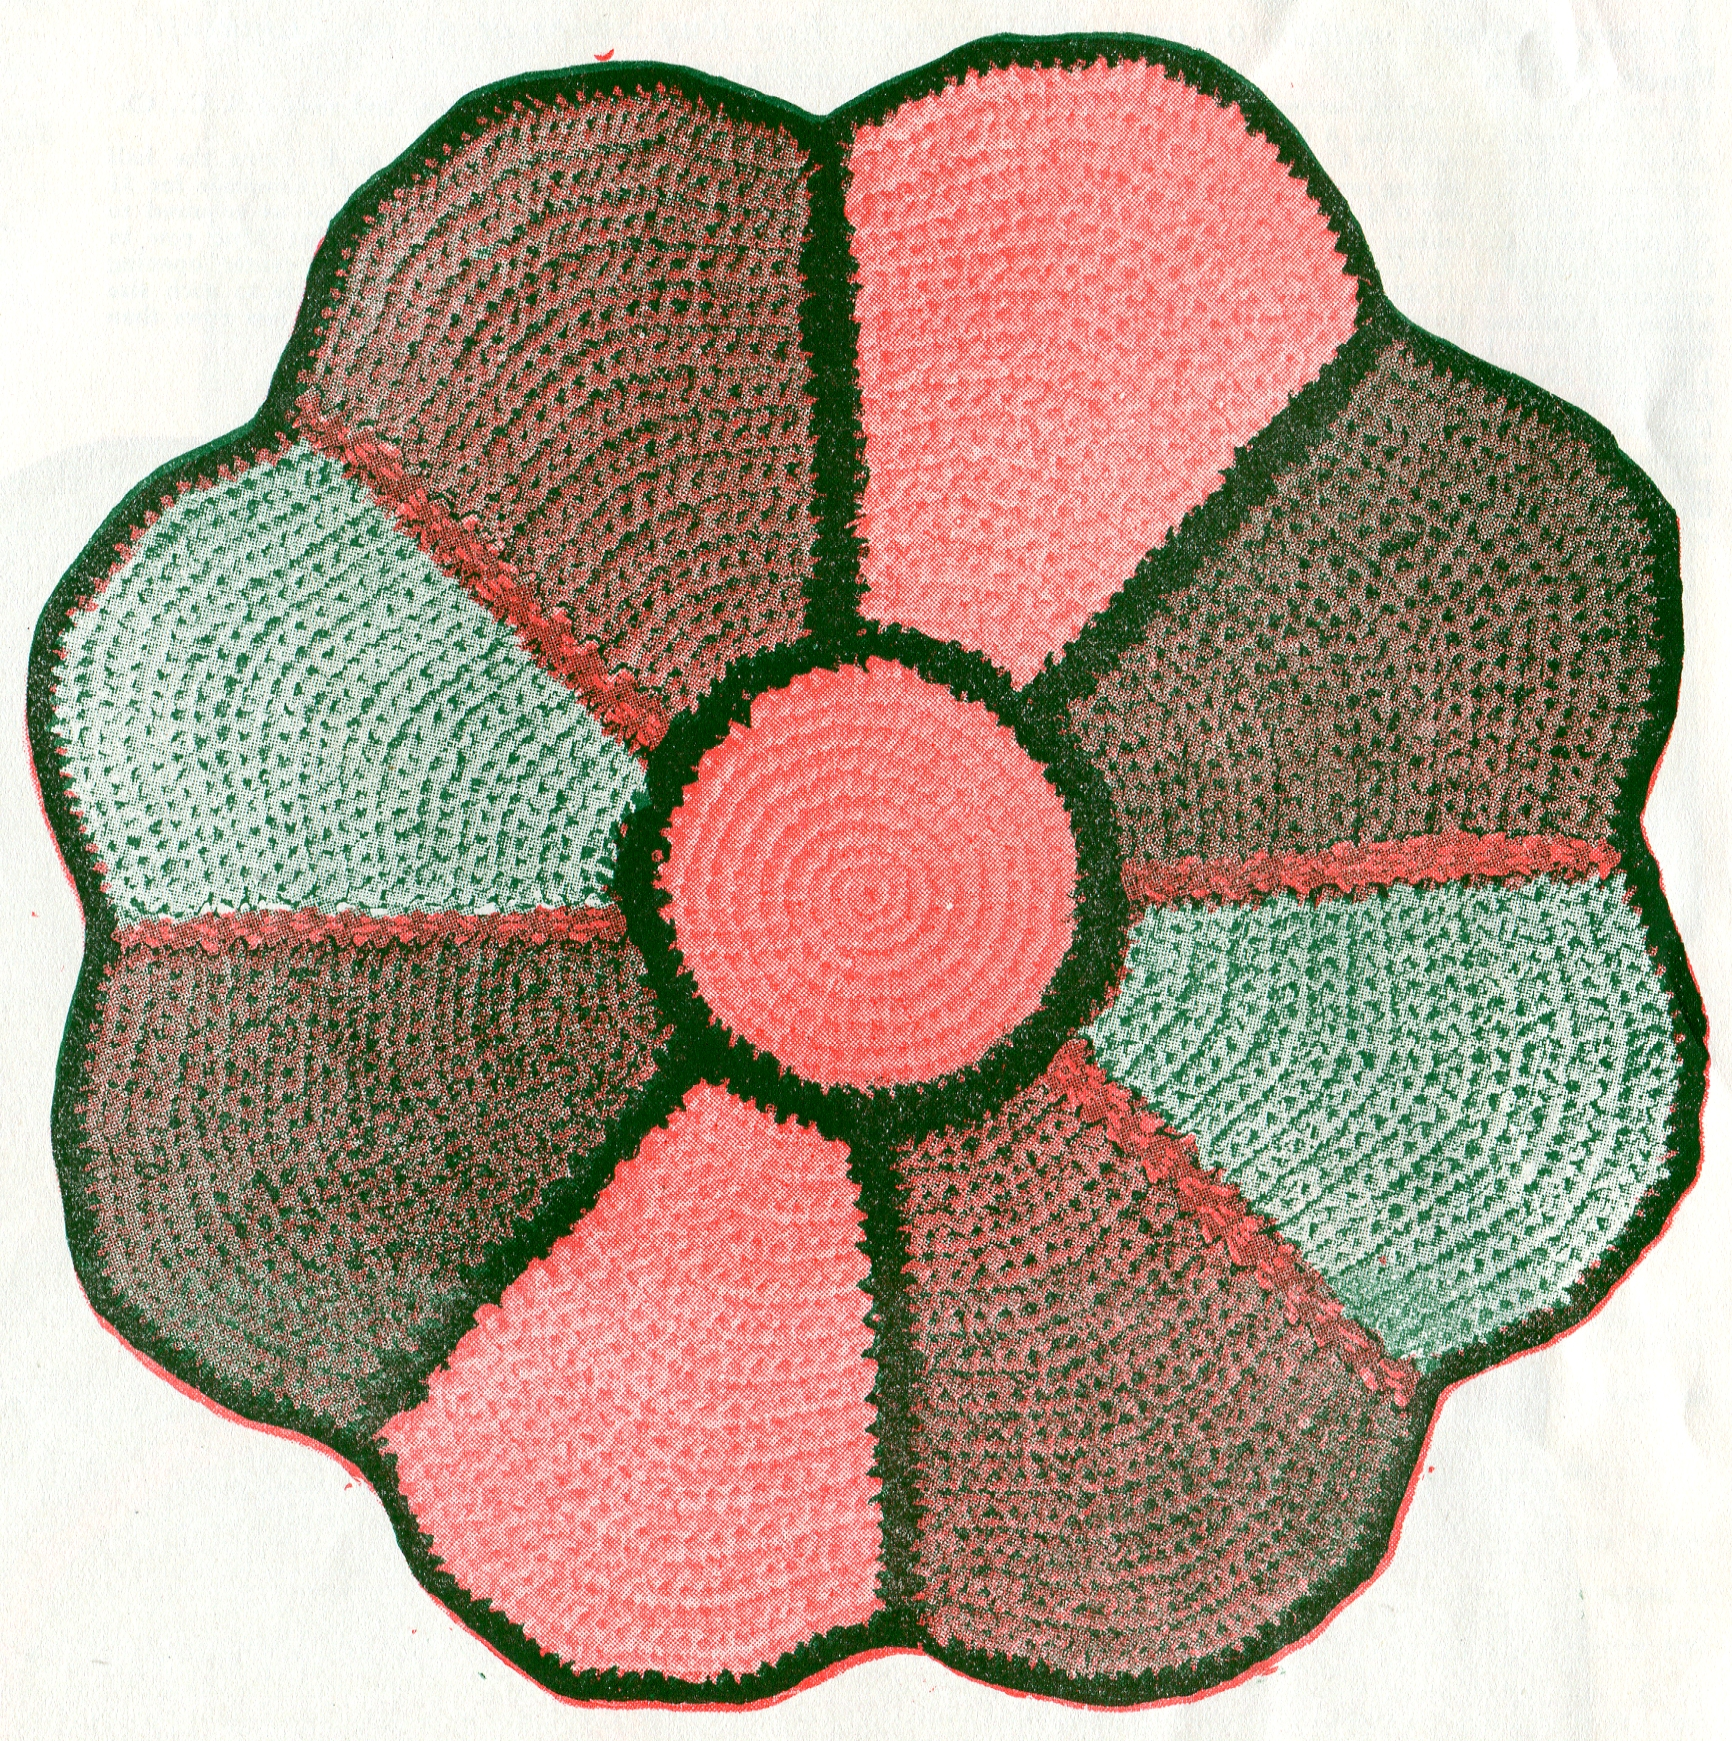 Vintage Crafts And More   Crocheted Rag Rug Pattern